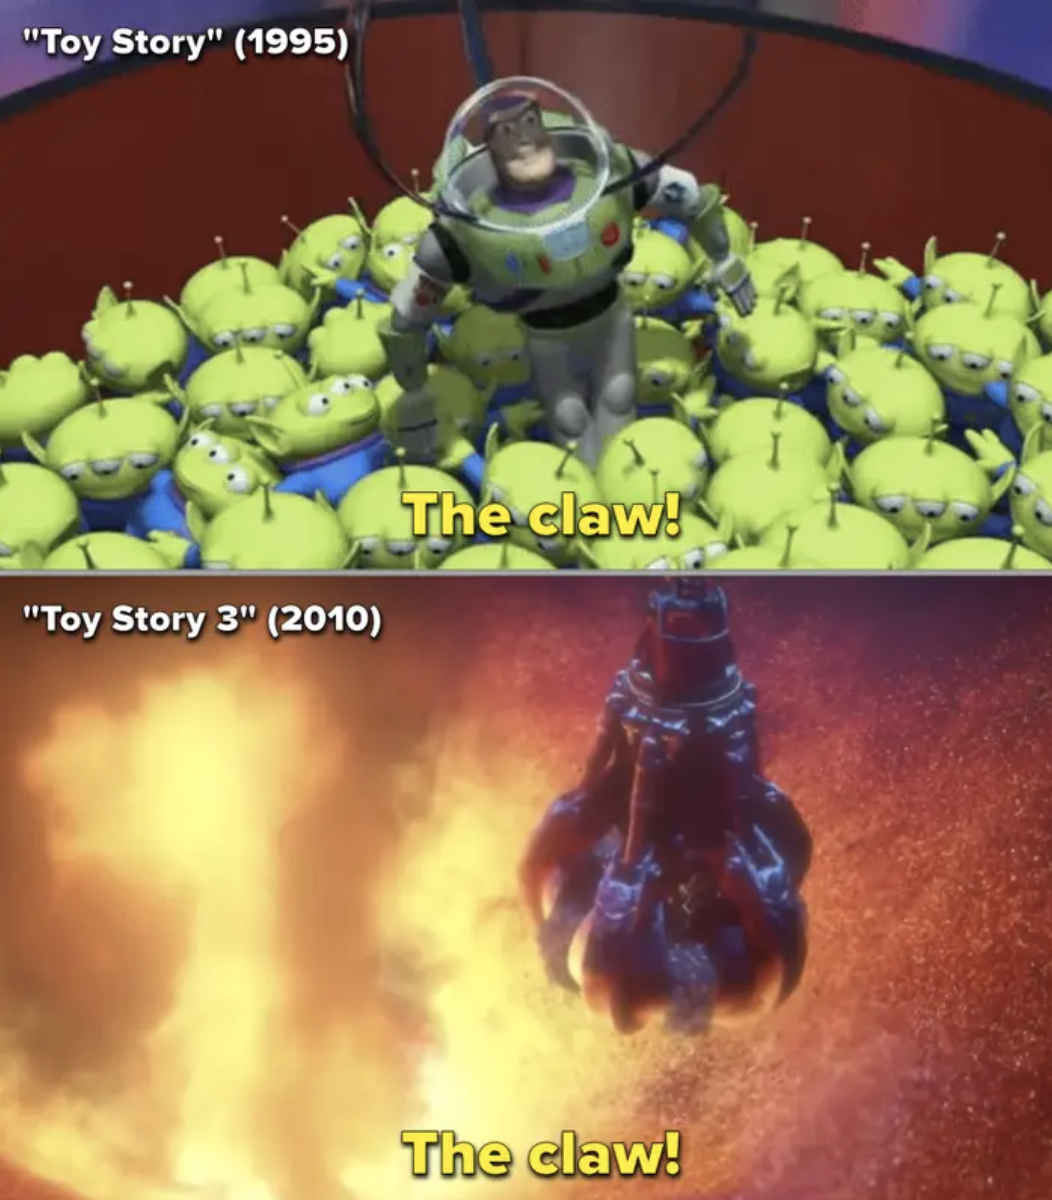 Side-by-side of the toy aliens using the claw in the first movie vs. in the third movie